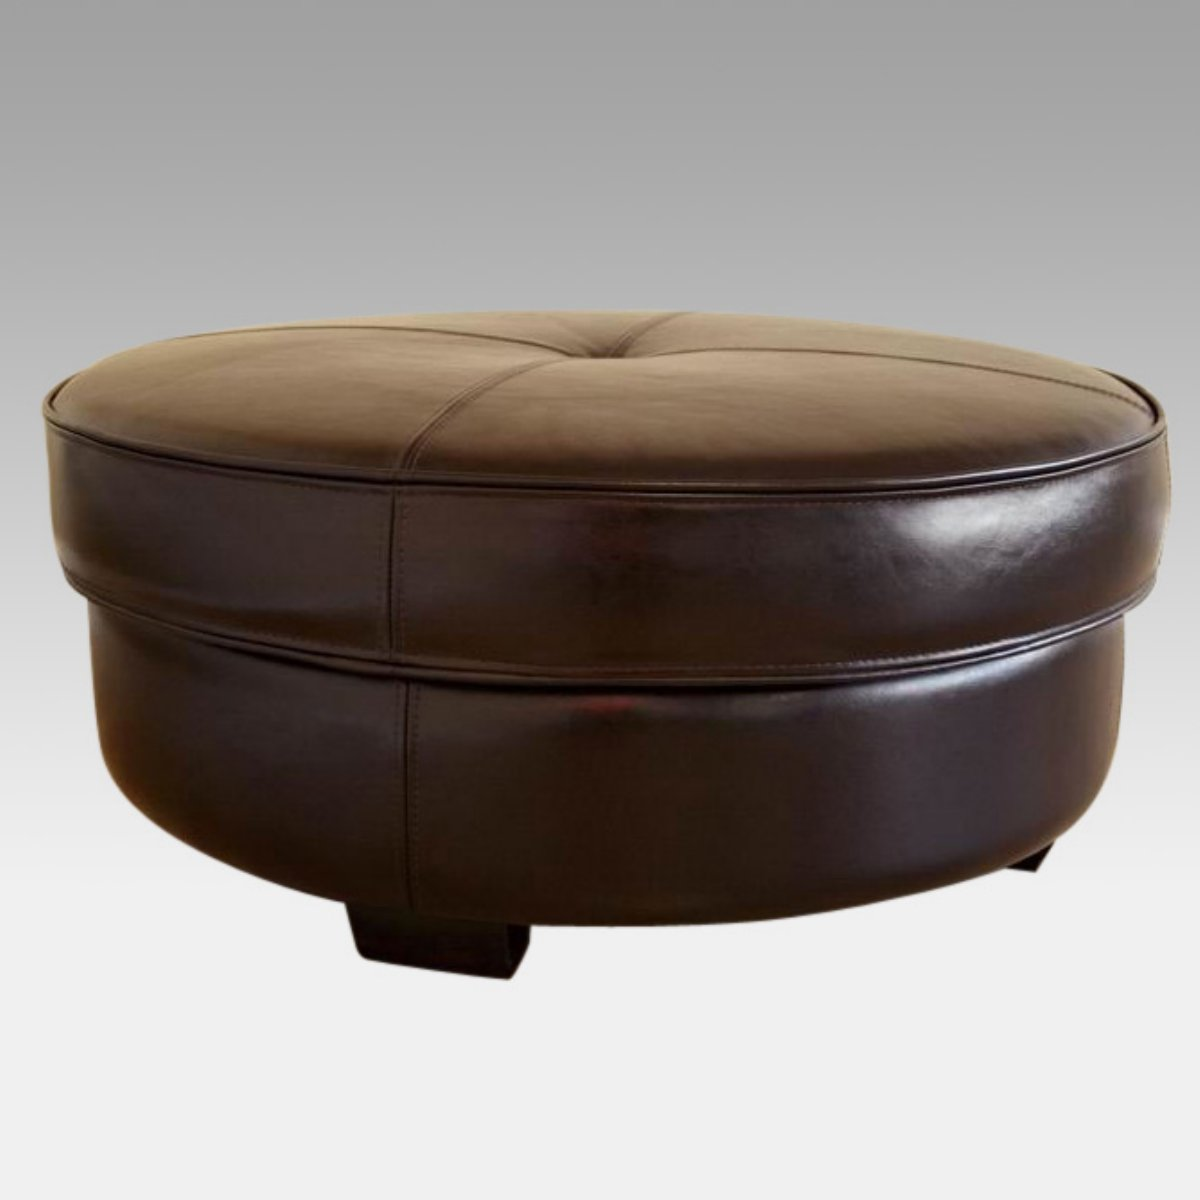 Round Coffee Table Leather Top Round Coffee Table Leather Brown Round Leather Coffee Table (Image 5 of 10)